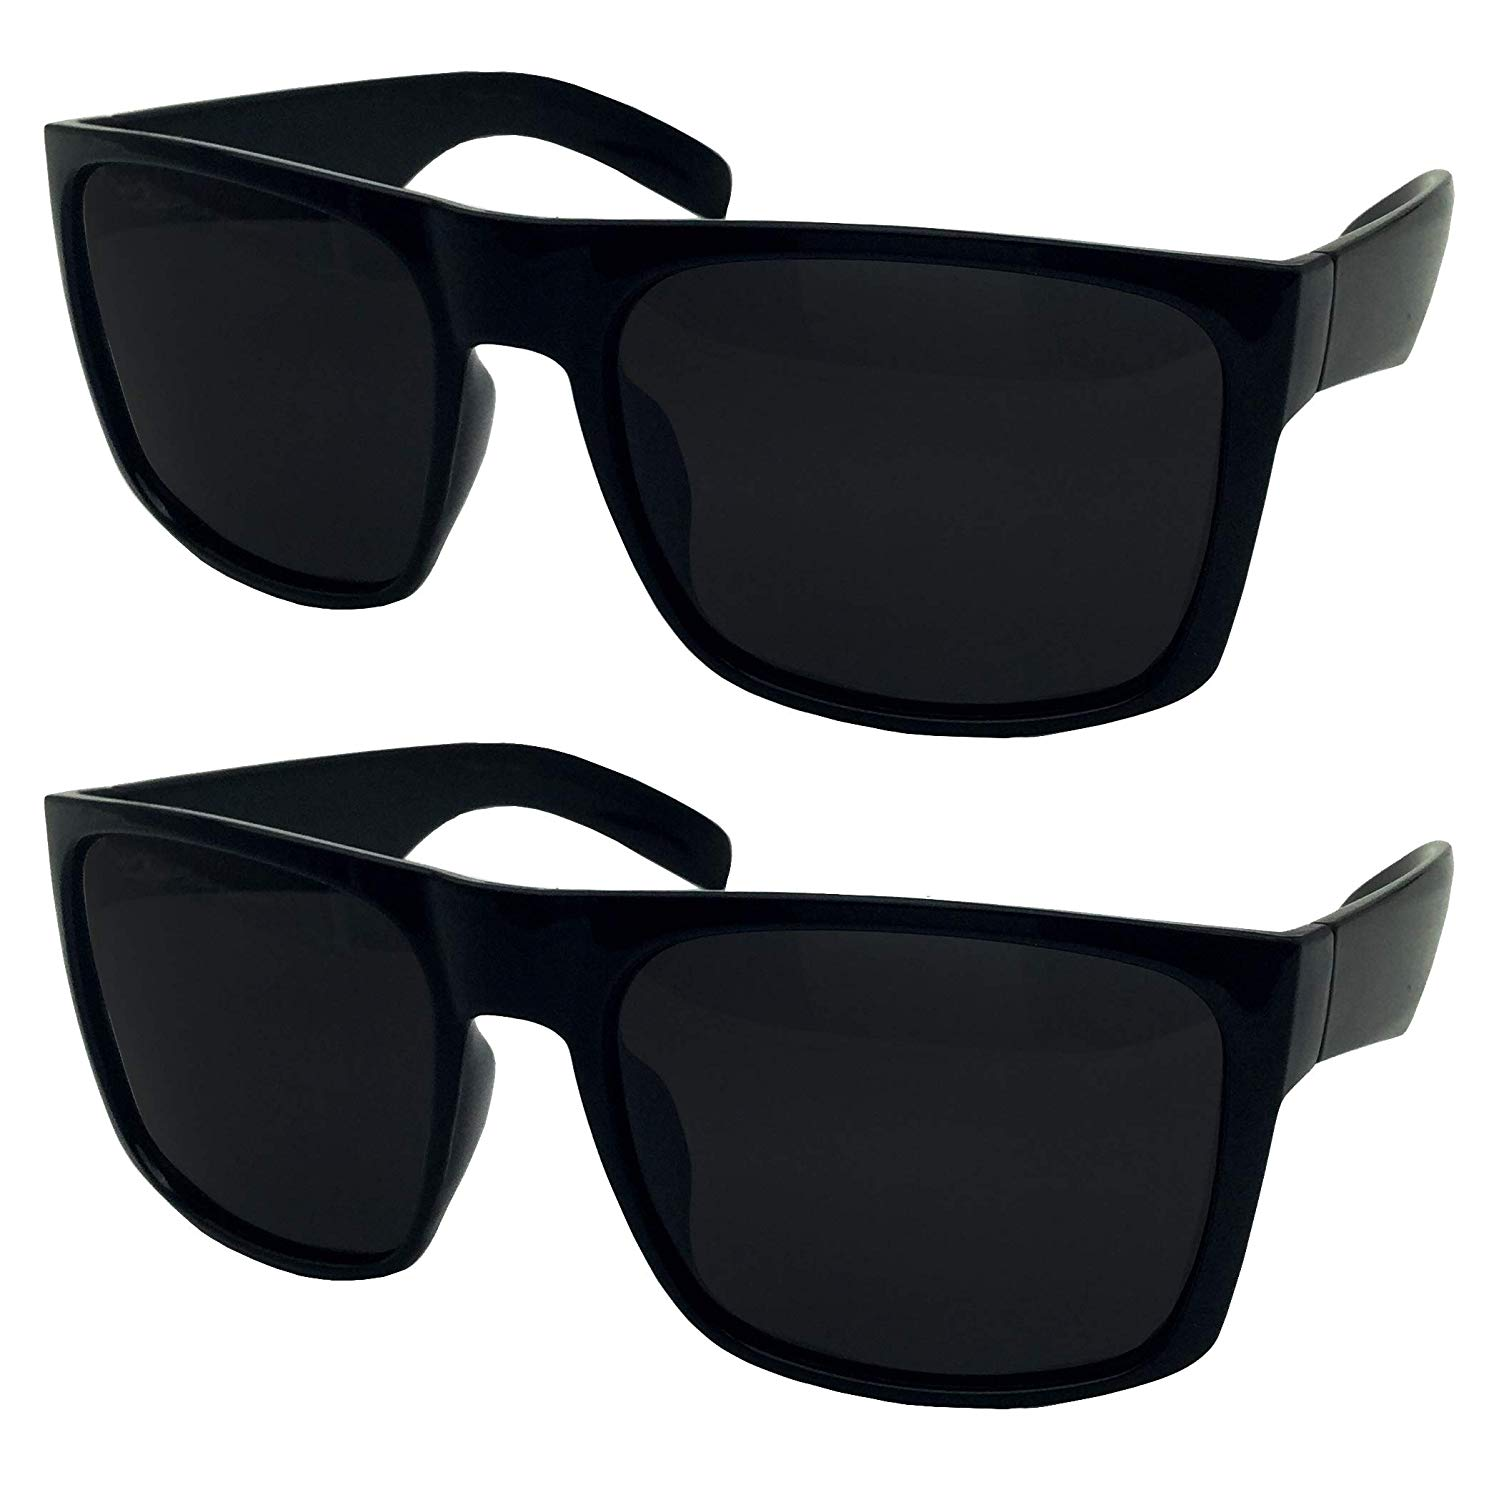 f08462c8b5b37 Get Quotations · 2 Pack XL Polarized Men s Big Wide Frame Sunglasses - Large  Head Fit